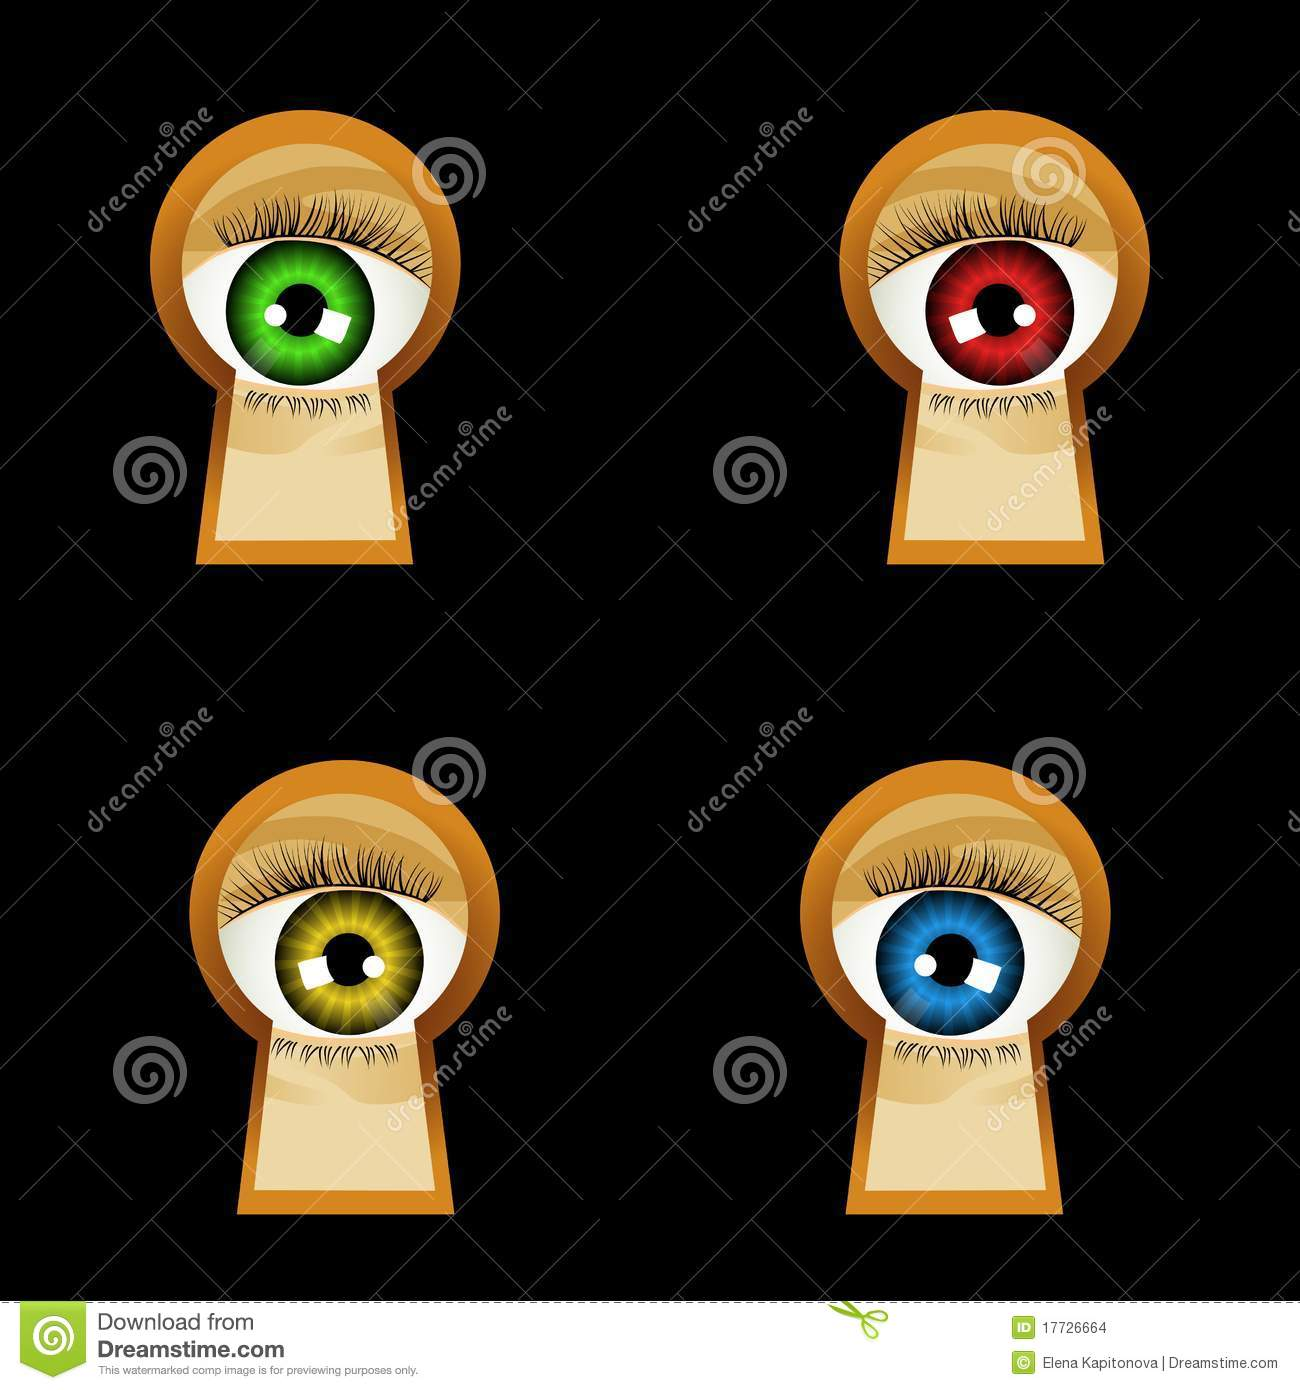 watchman clipart - photo #32